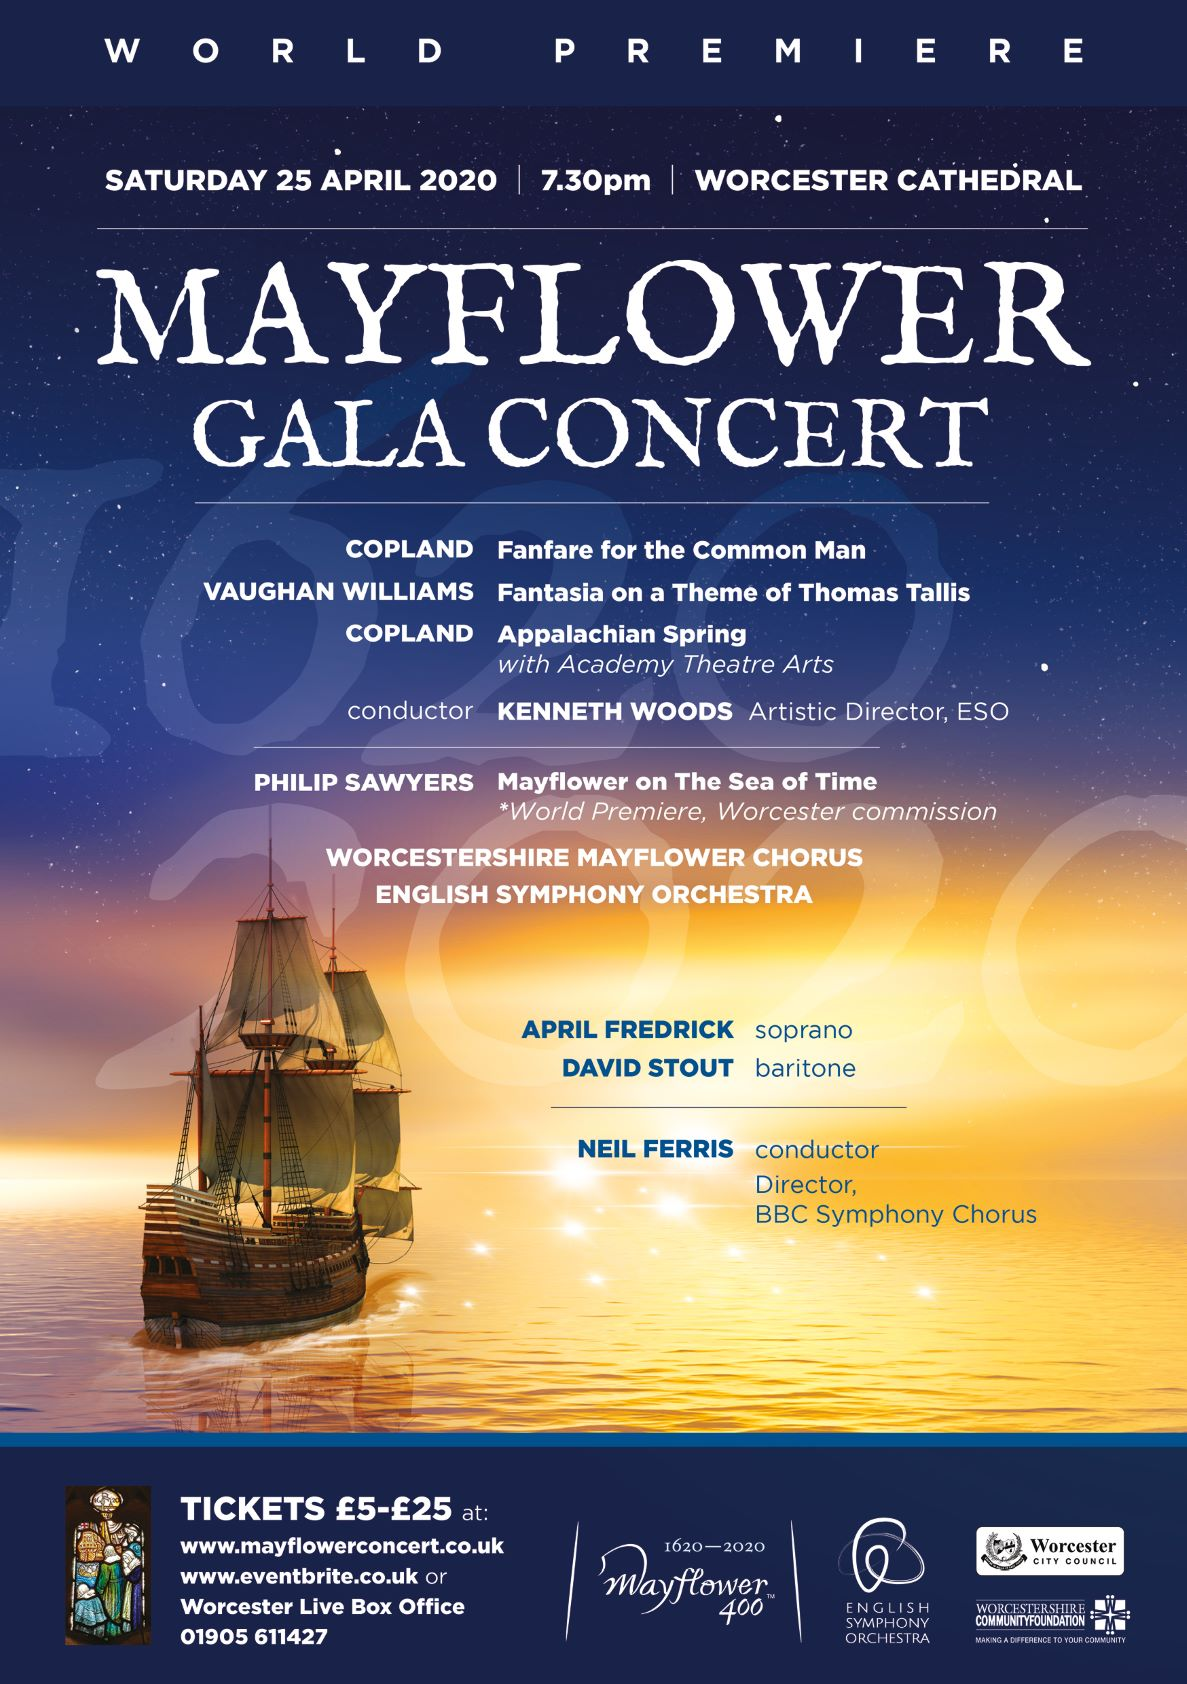 Worcester commemorates 'Mayflower 400' with a World Premiere Gala Concert with the English Symphony Orchestra